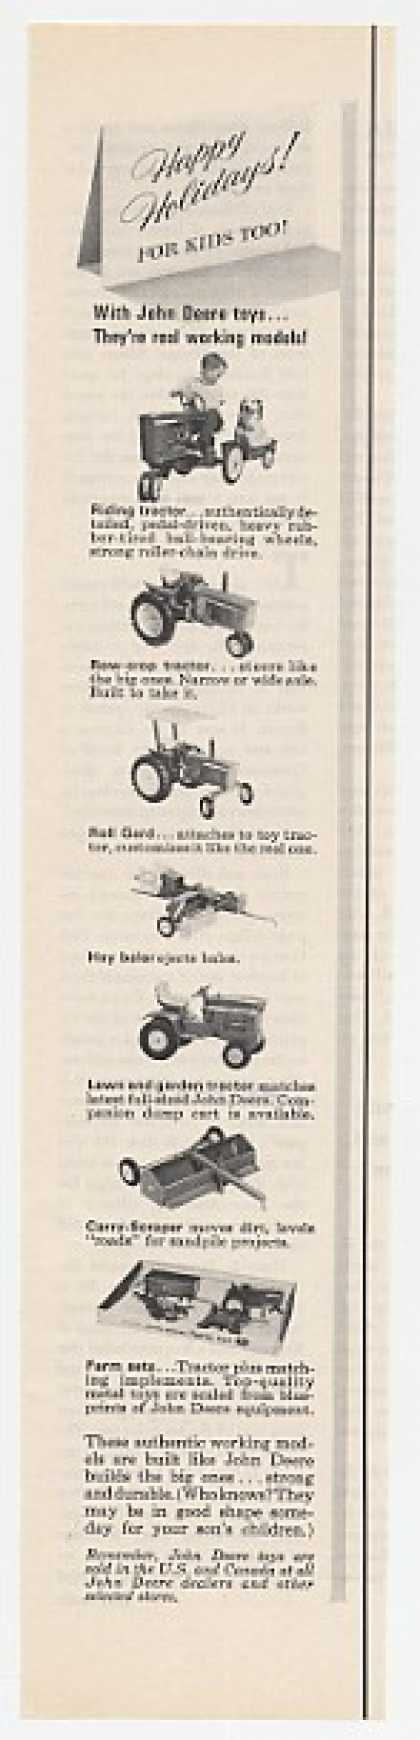 John Deere Toy Tractor Baler Scraper Toys (1967)